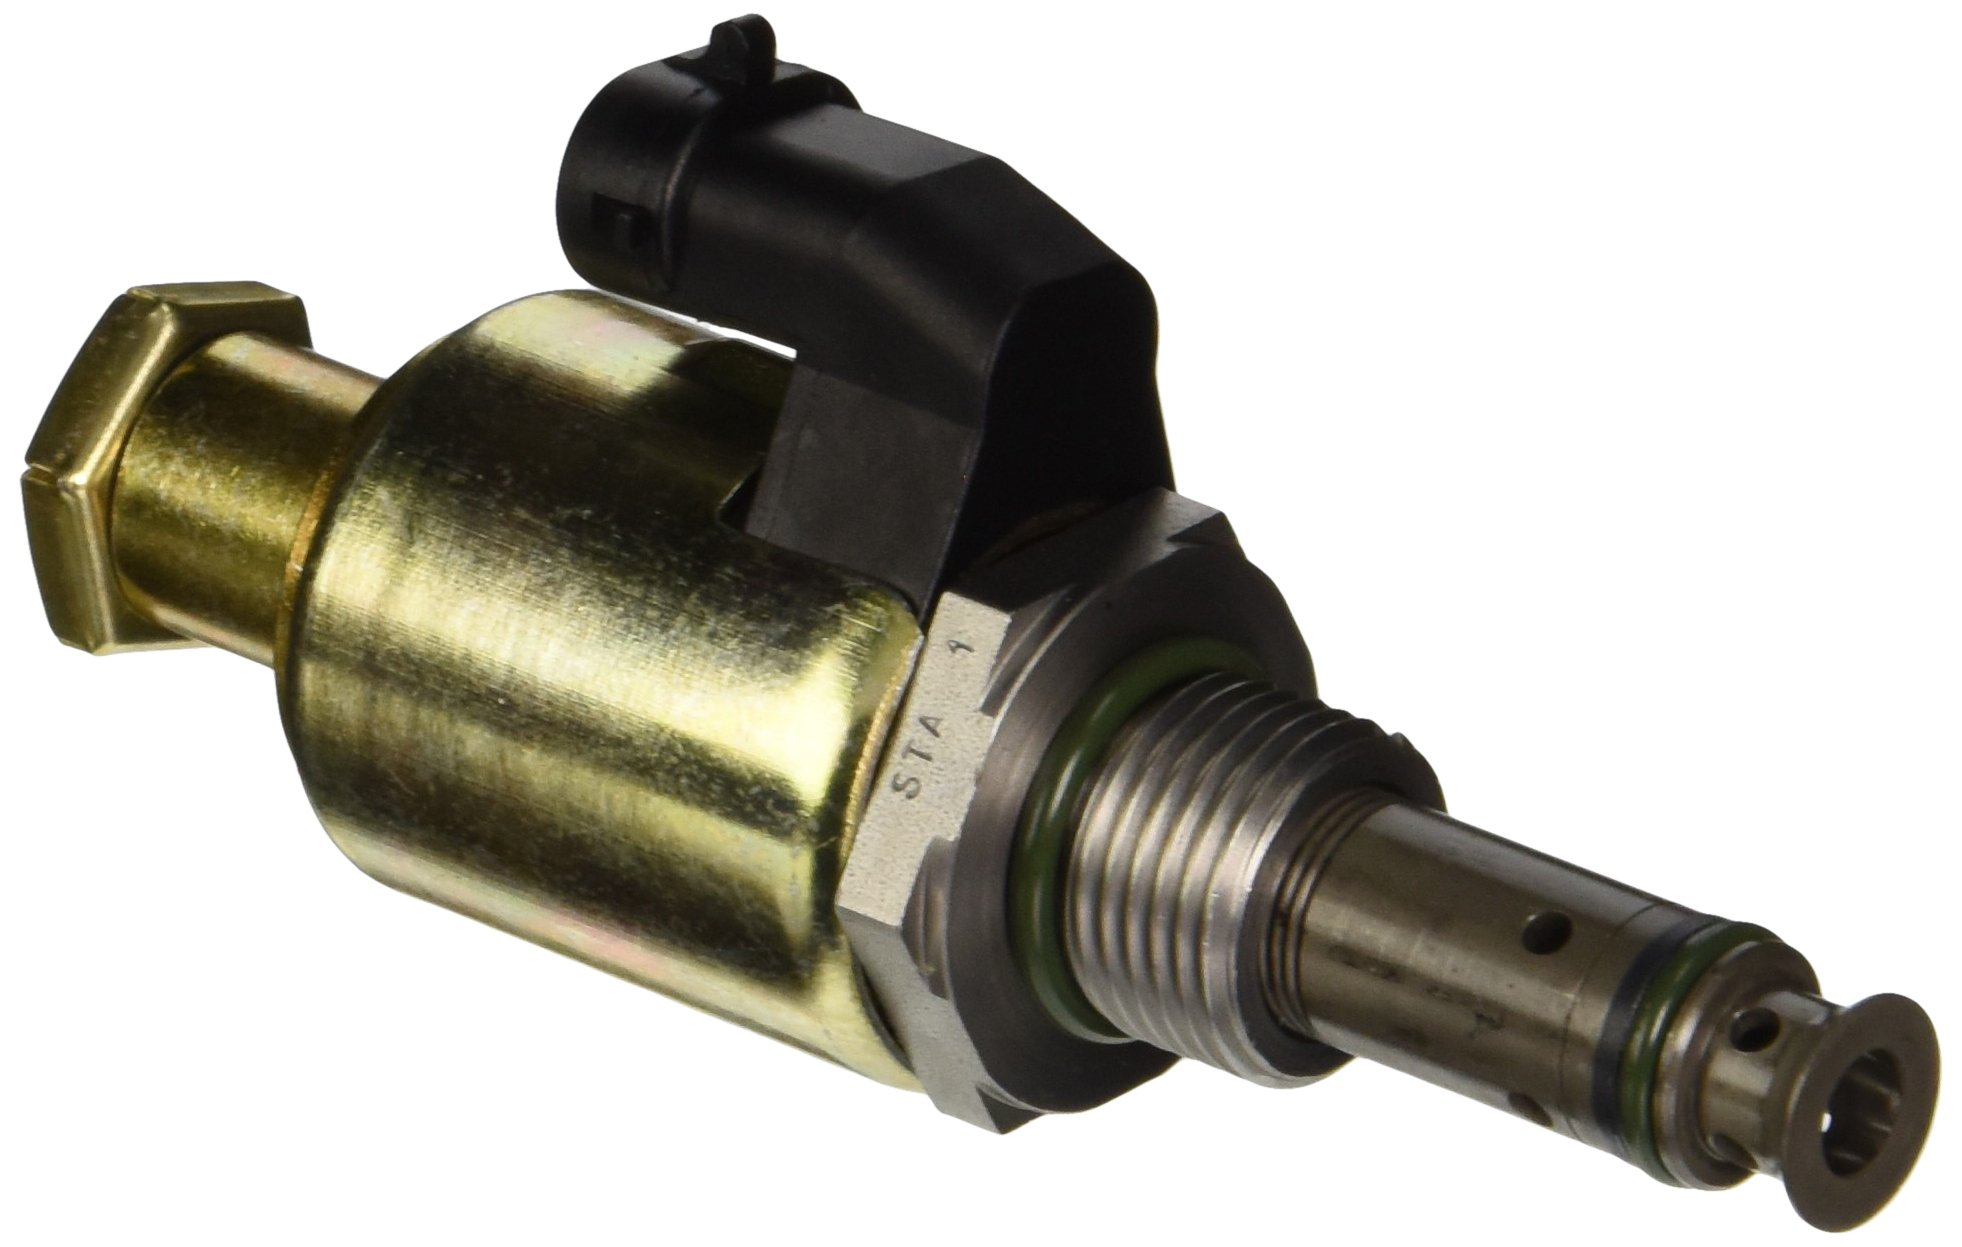 Motorcraft CM5013 Fuel Pressure Regulator by Motorcraft